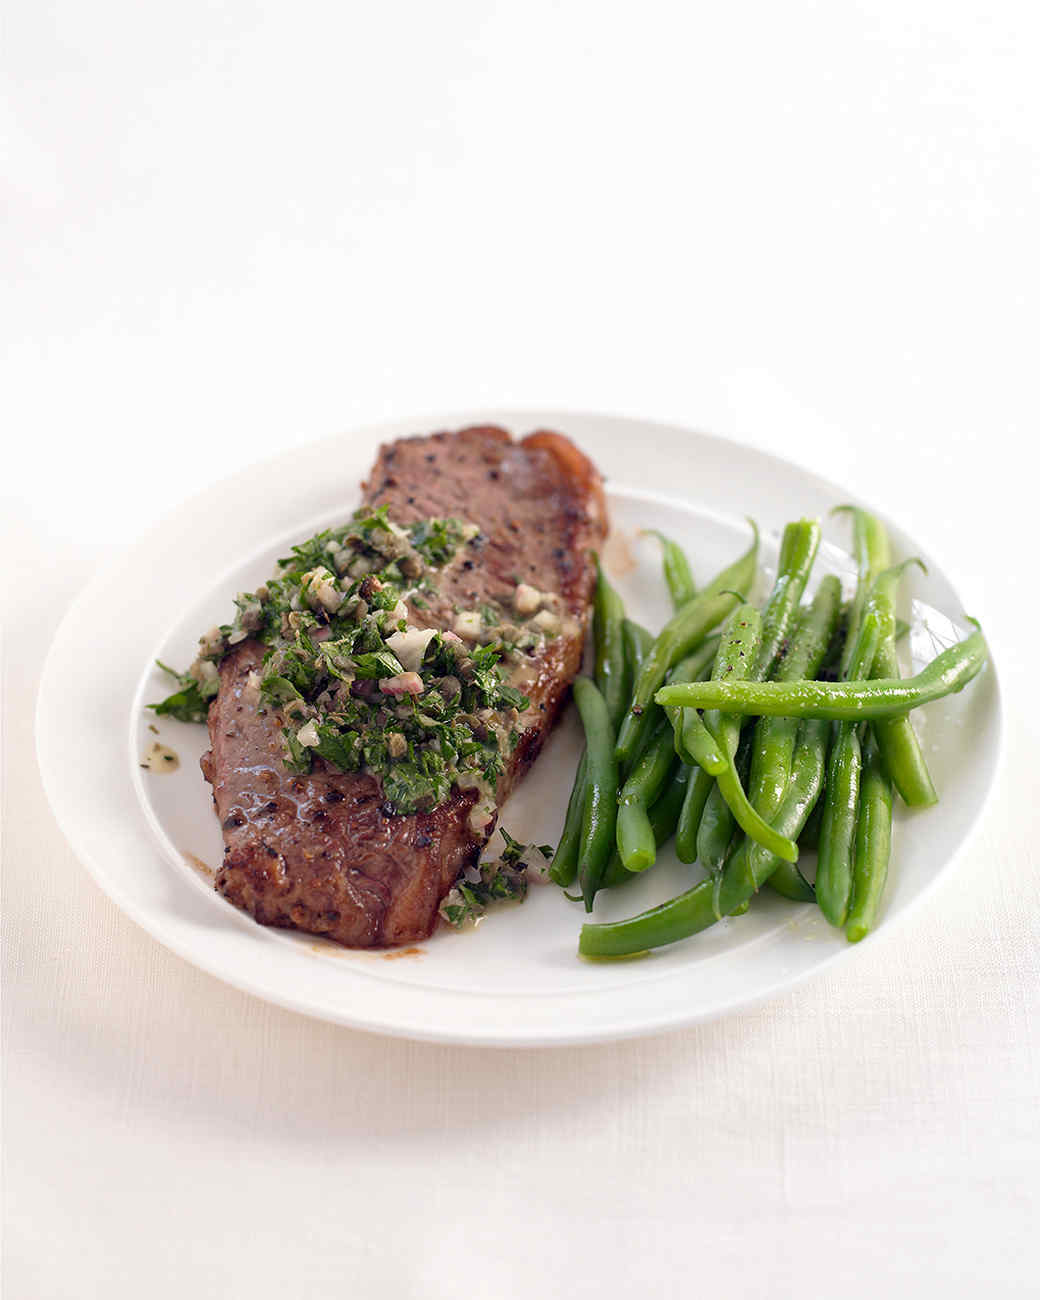 edf_jul06_forone_steak.jpg